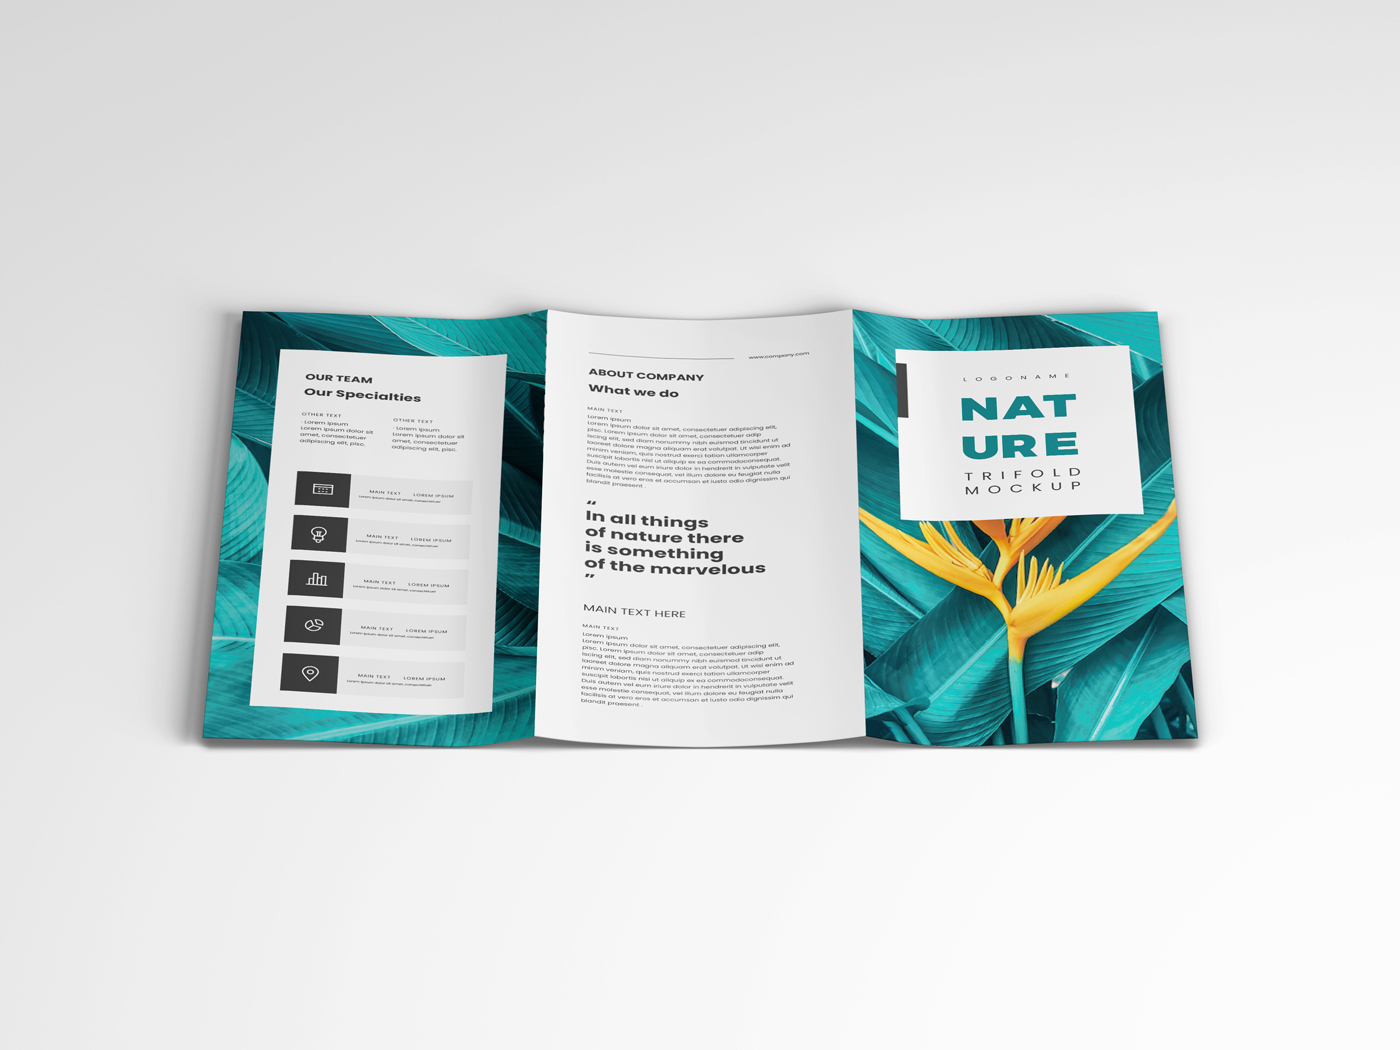 A4 Trifold Mockups V3 example image 12